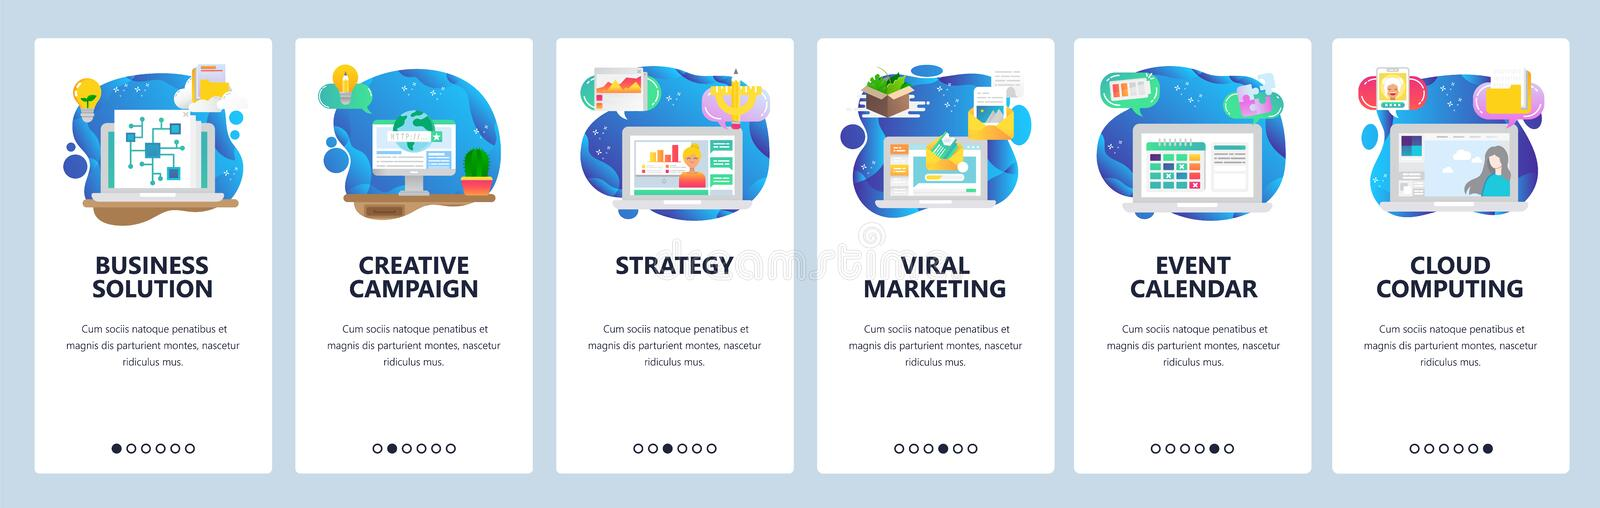 Mobile app onboarding screens. Business plan and strategy, viral marketing, email, event calendar. Menu vector banner royalty free illustration